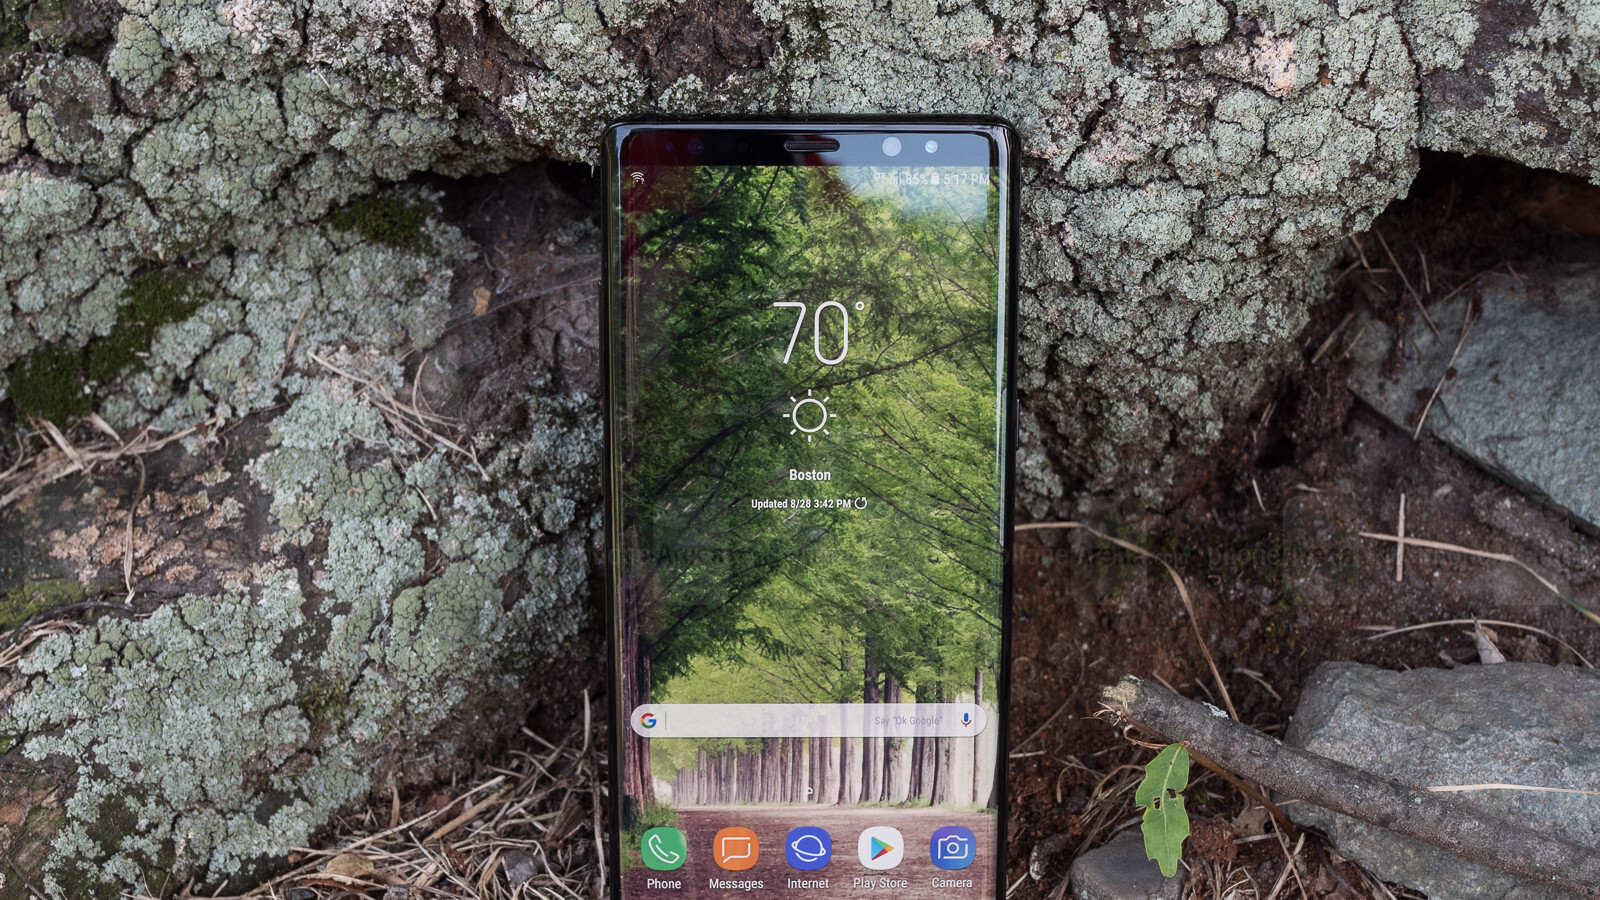 Dc5n United States It In English Created At 2018 07 18 0012 Samsung Galaxy Grand Prime Quad Core 12 Ghz Processor 8 Mp Camera Android Kitkat Ready The Note New And Unlocked Down To 650 On Amazon Its Not Even A Exclusive